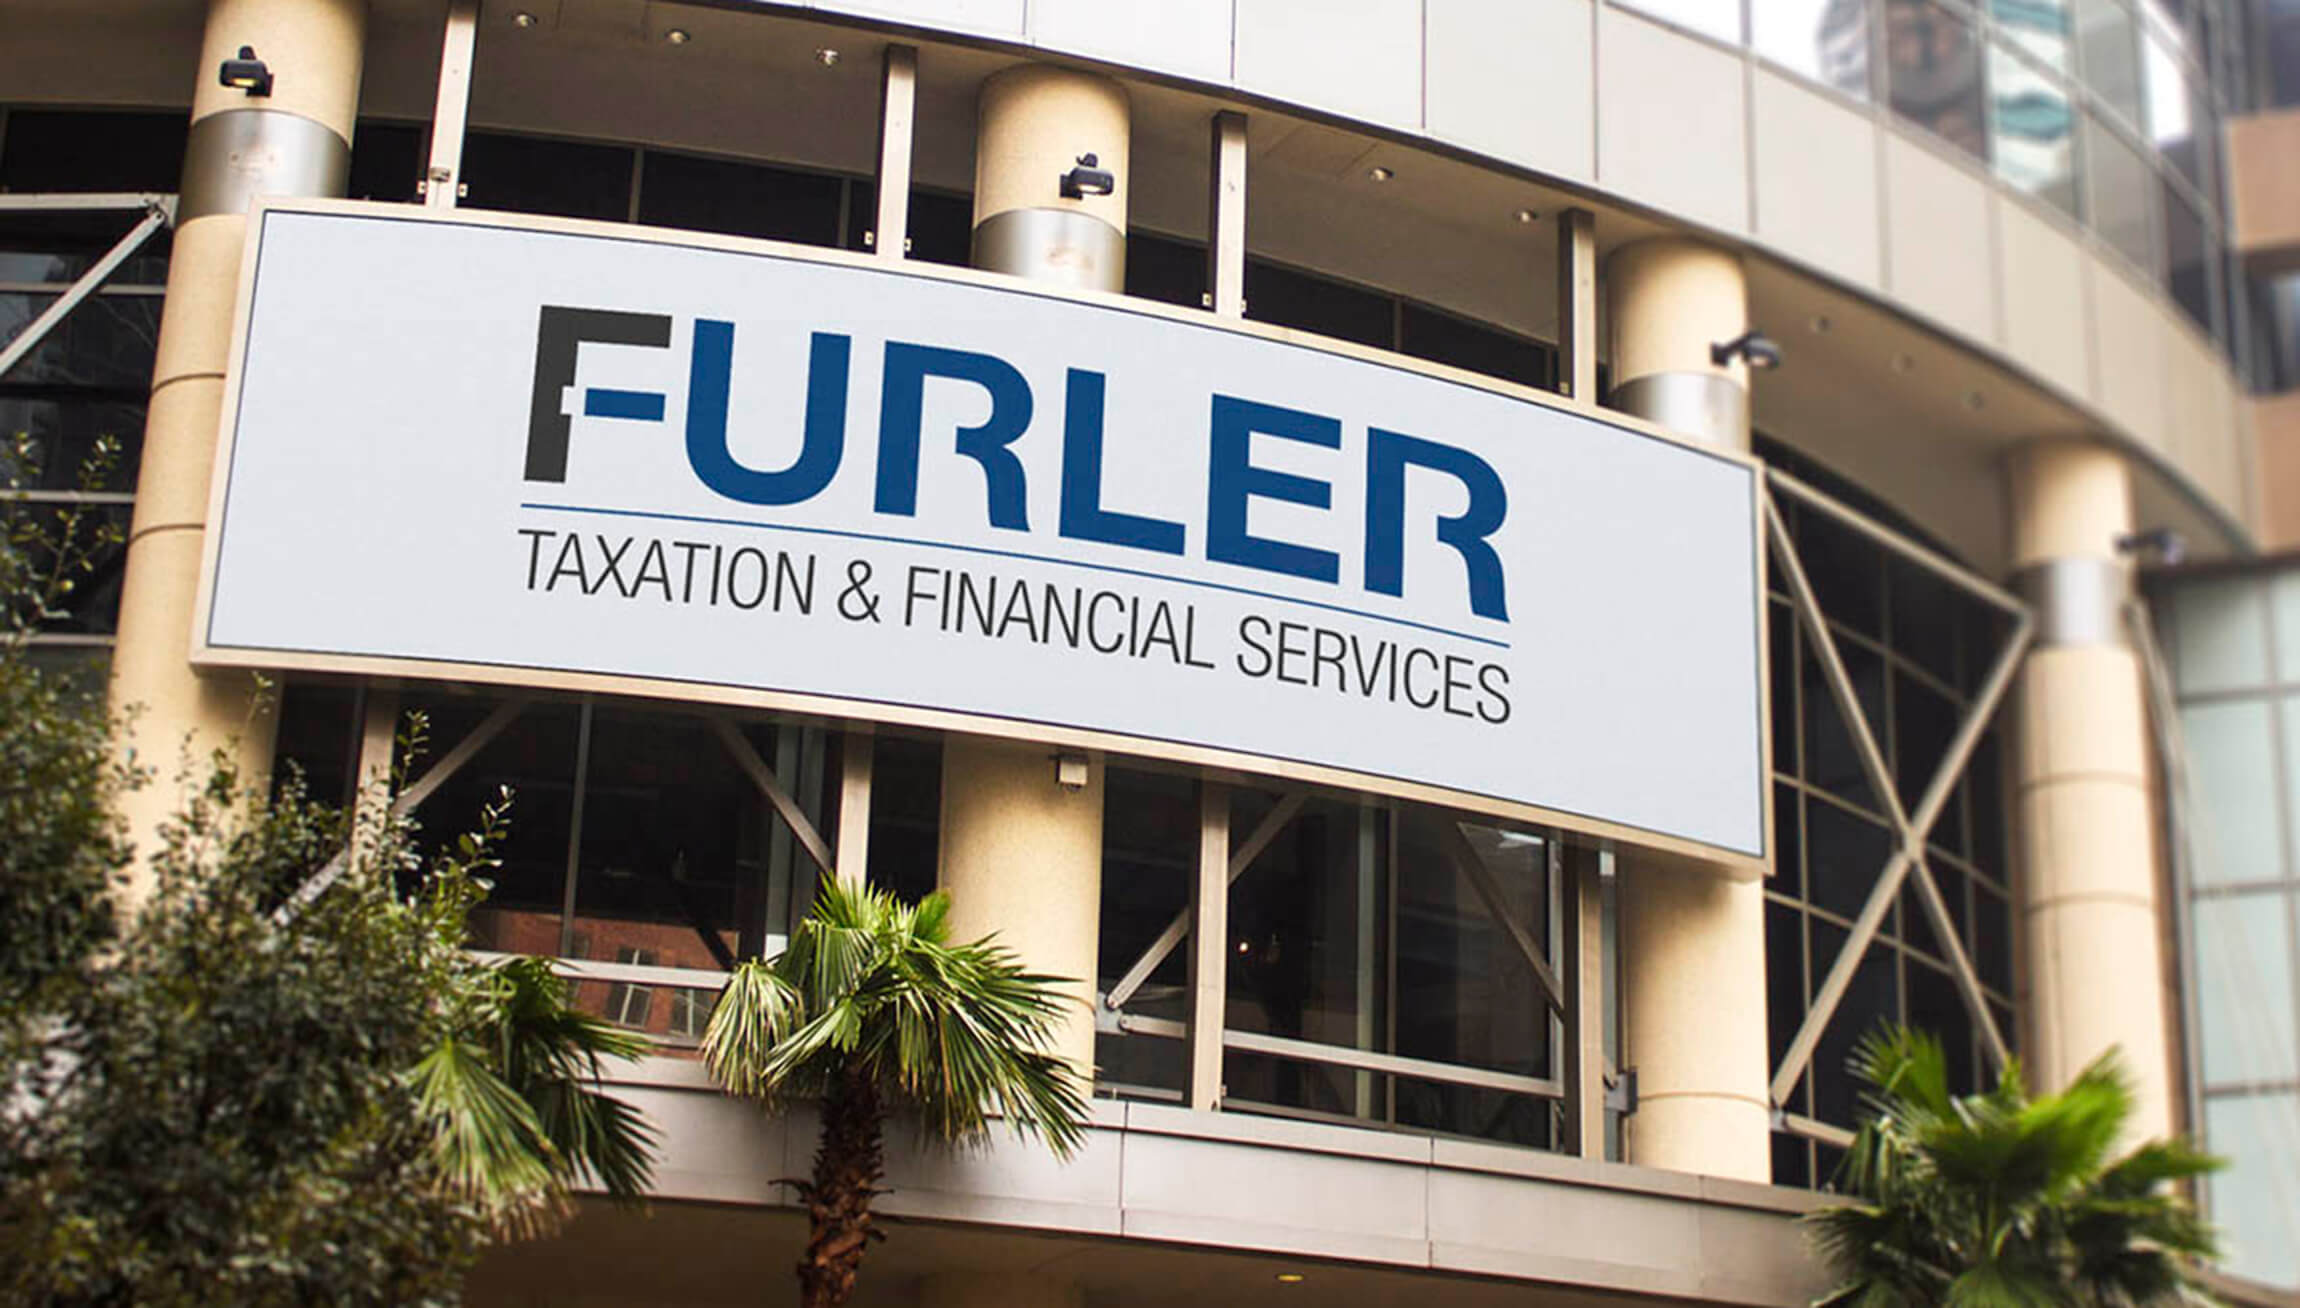 Logo & Branding - Logo design mockup on a large office sign for Furler Financial and Taxation Services